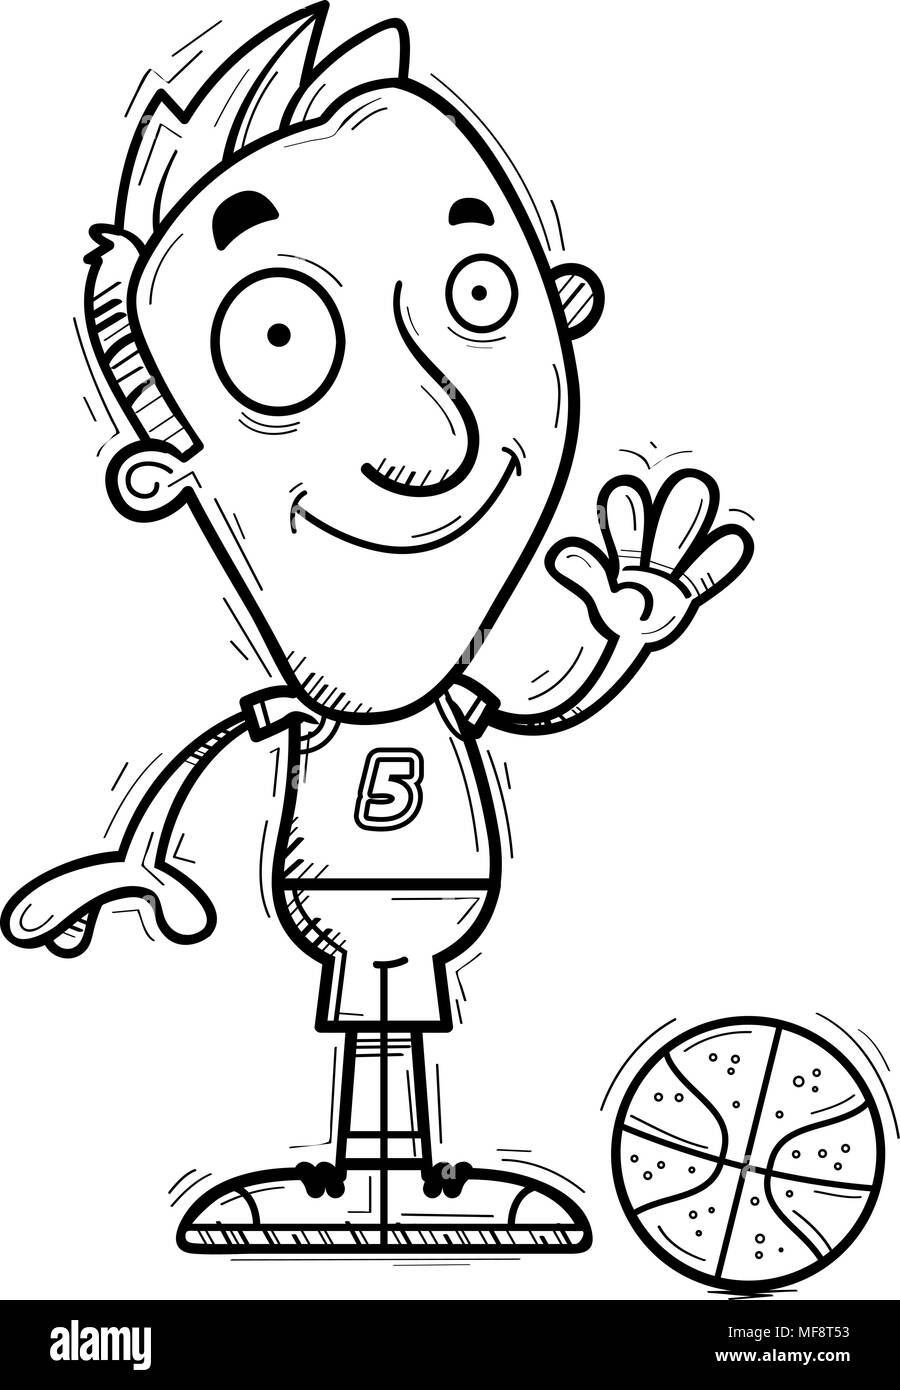 A cartoon illustration of a man basketball player waving. - Stock Image